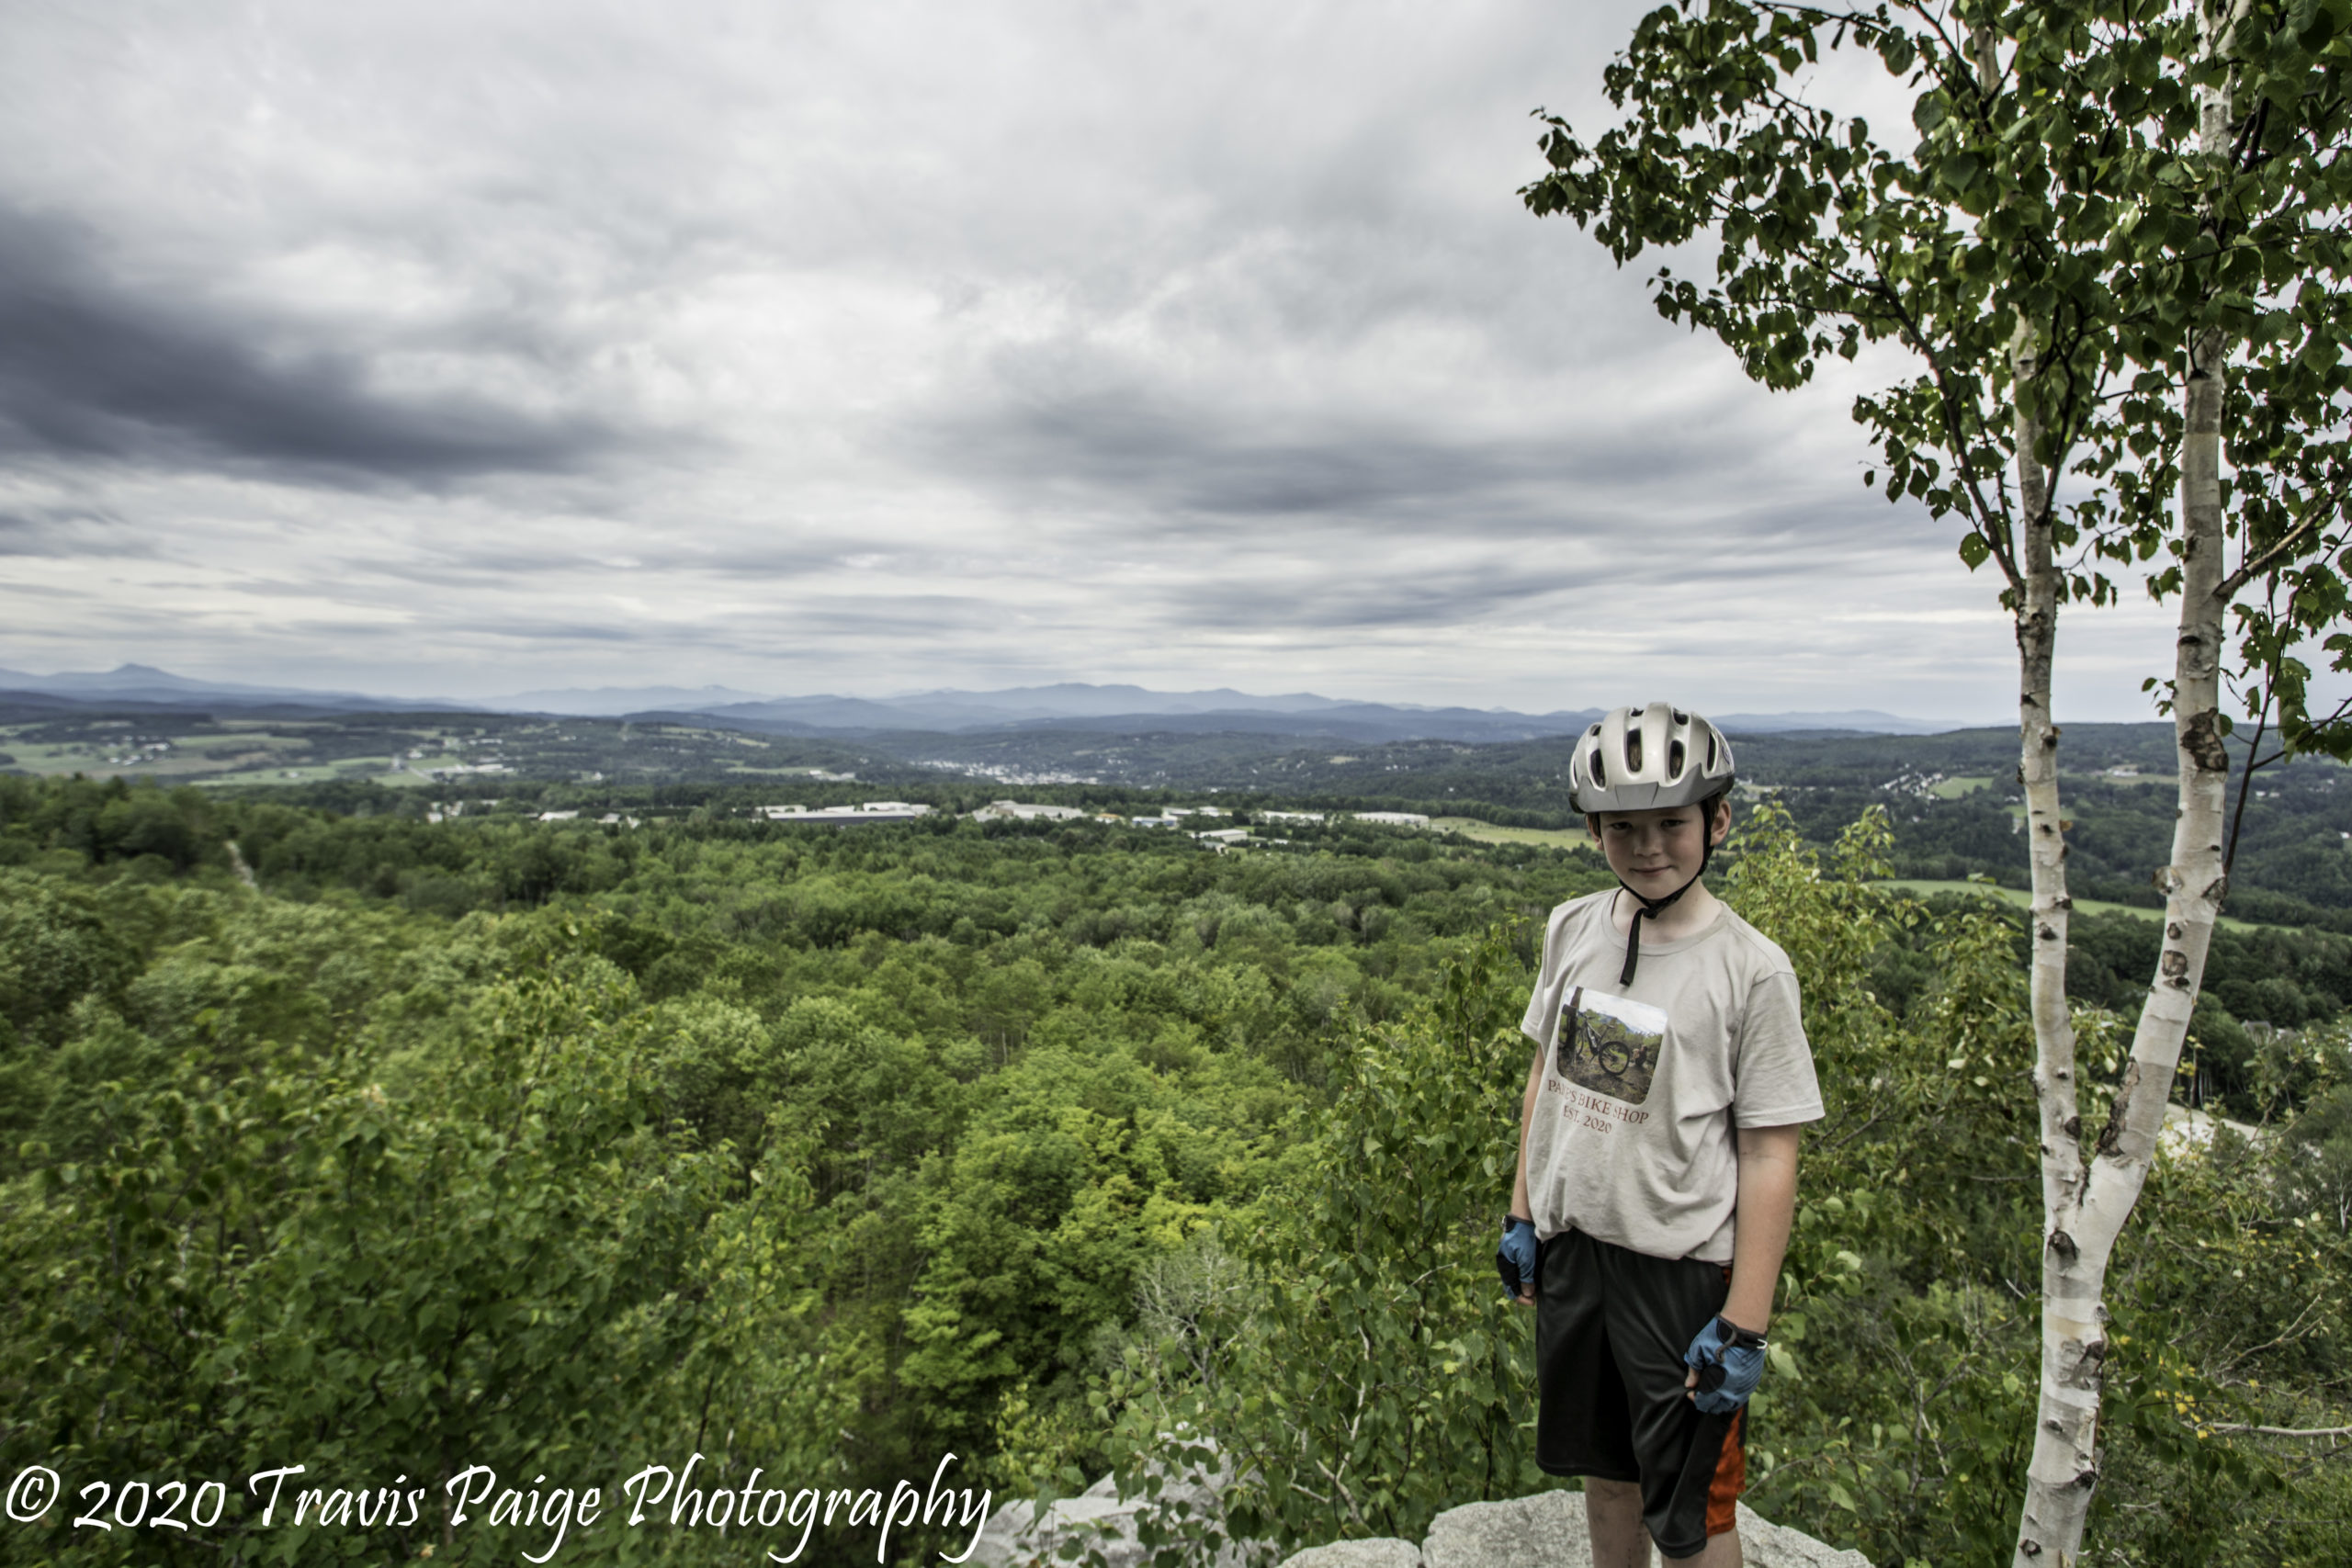 A visit to Millstone Trails